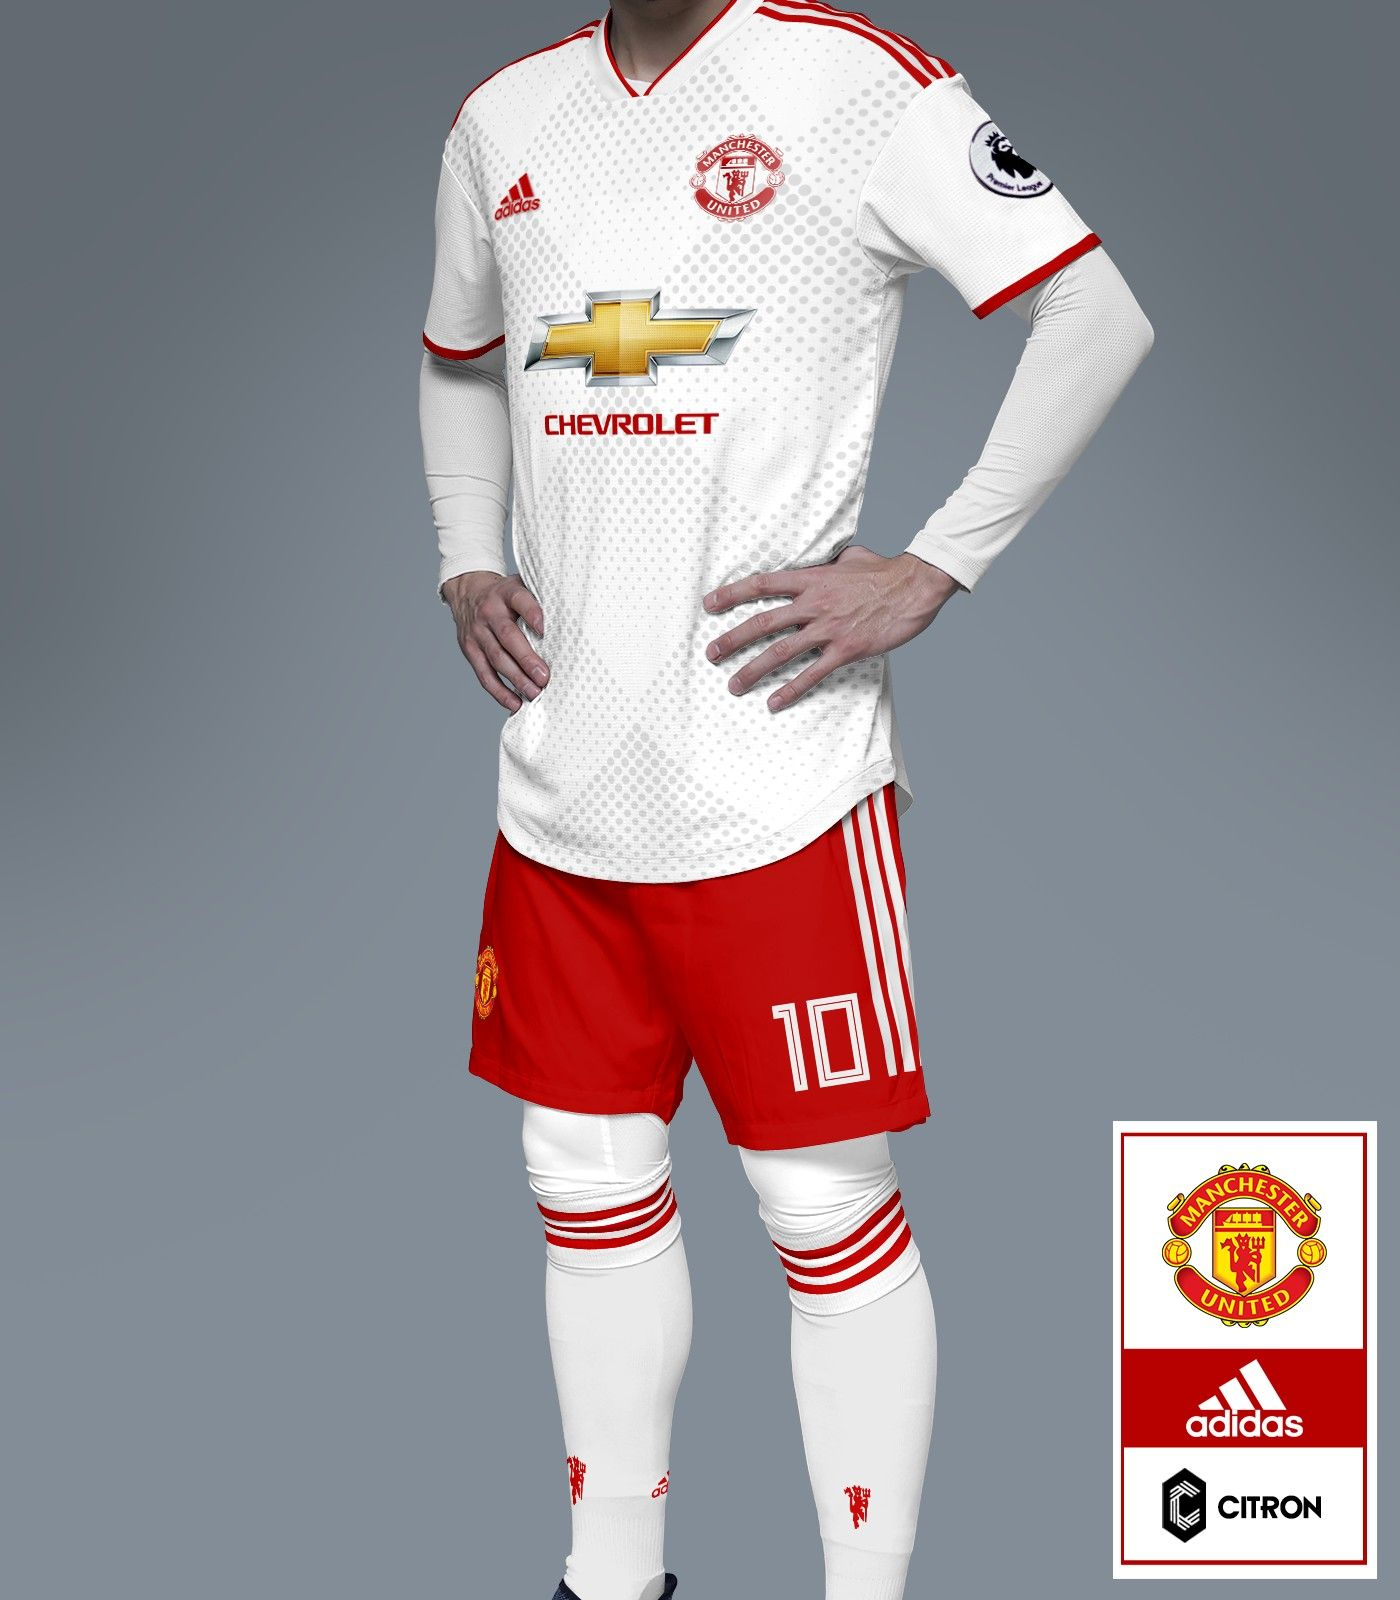 manchester united third kit 2019 2020 manchester united third kit 2019 2020 camisa de futebol camisas de futebol futebol neymar manchester united third kit 2019 2020